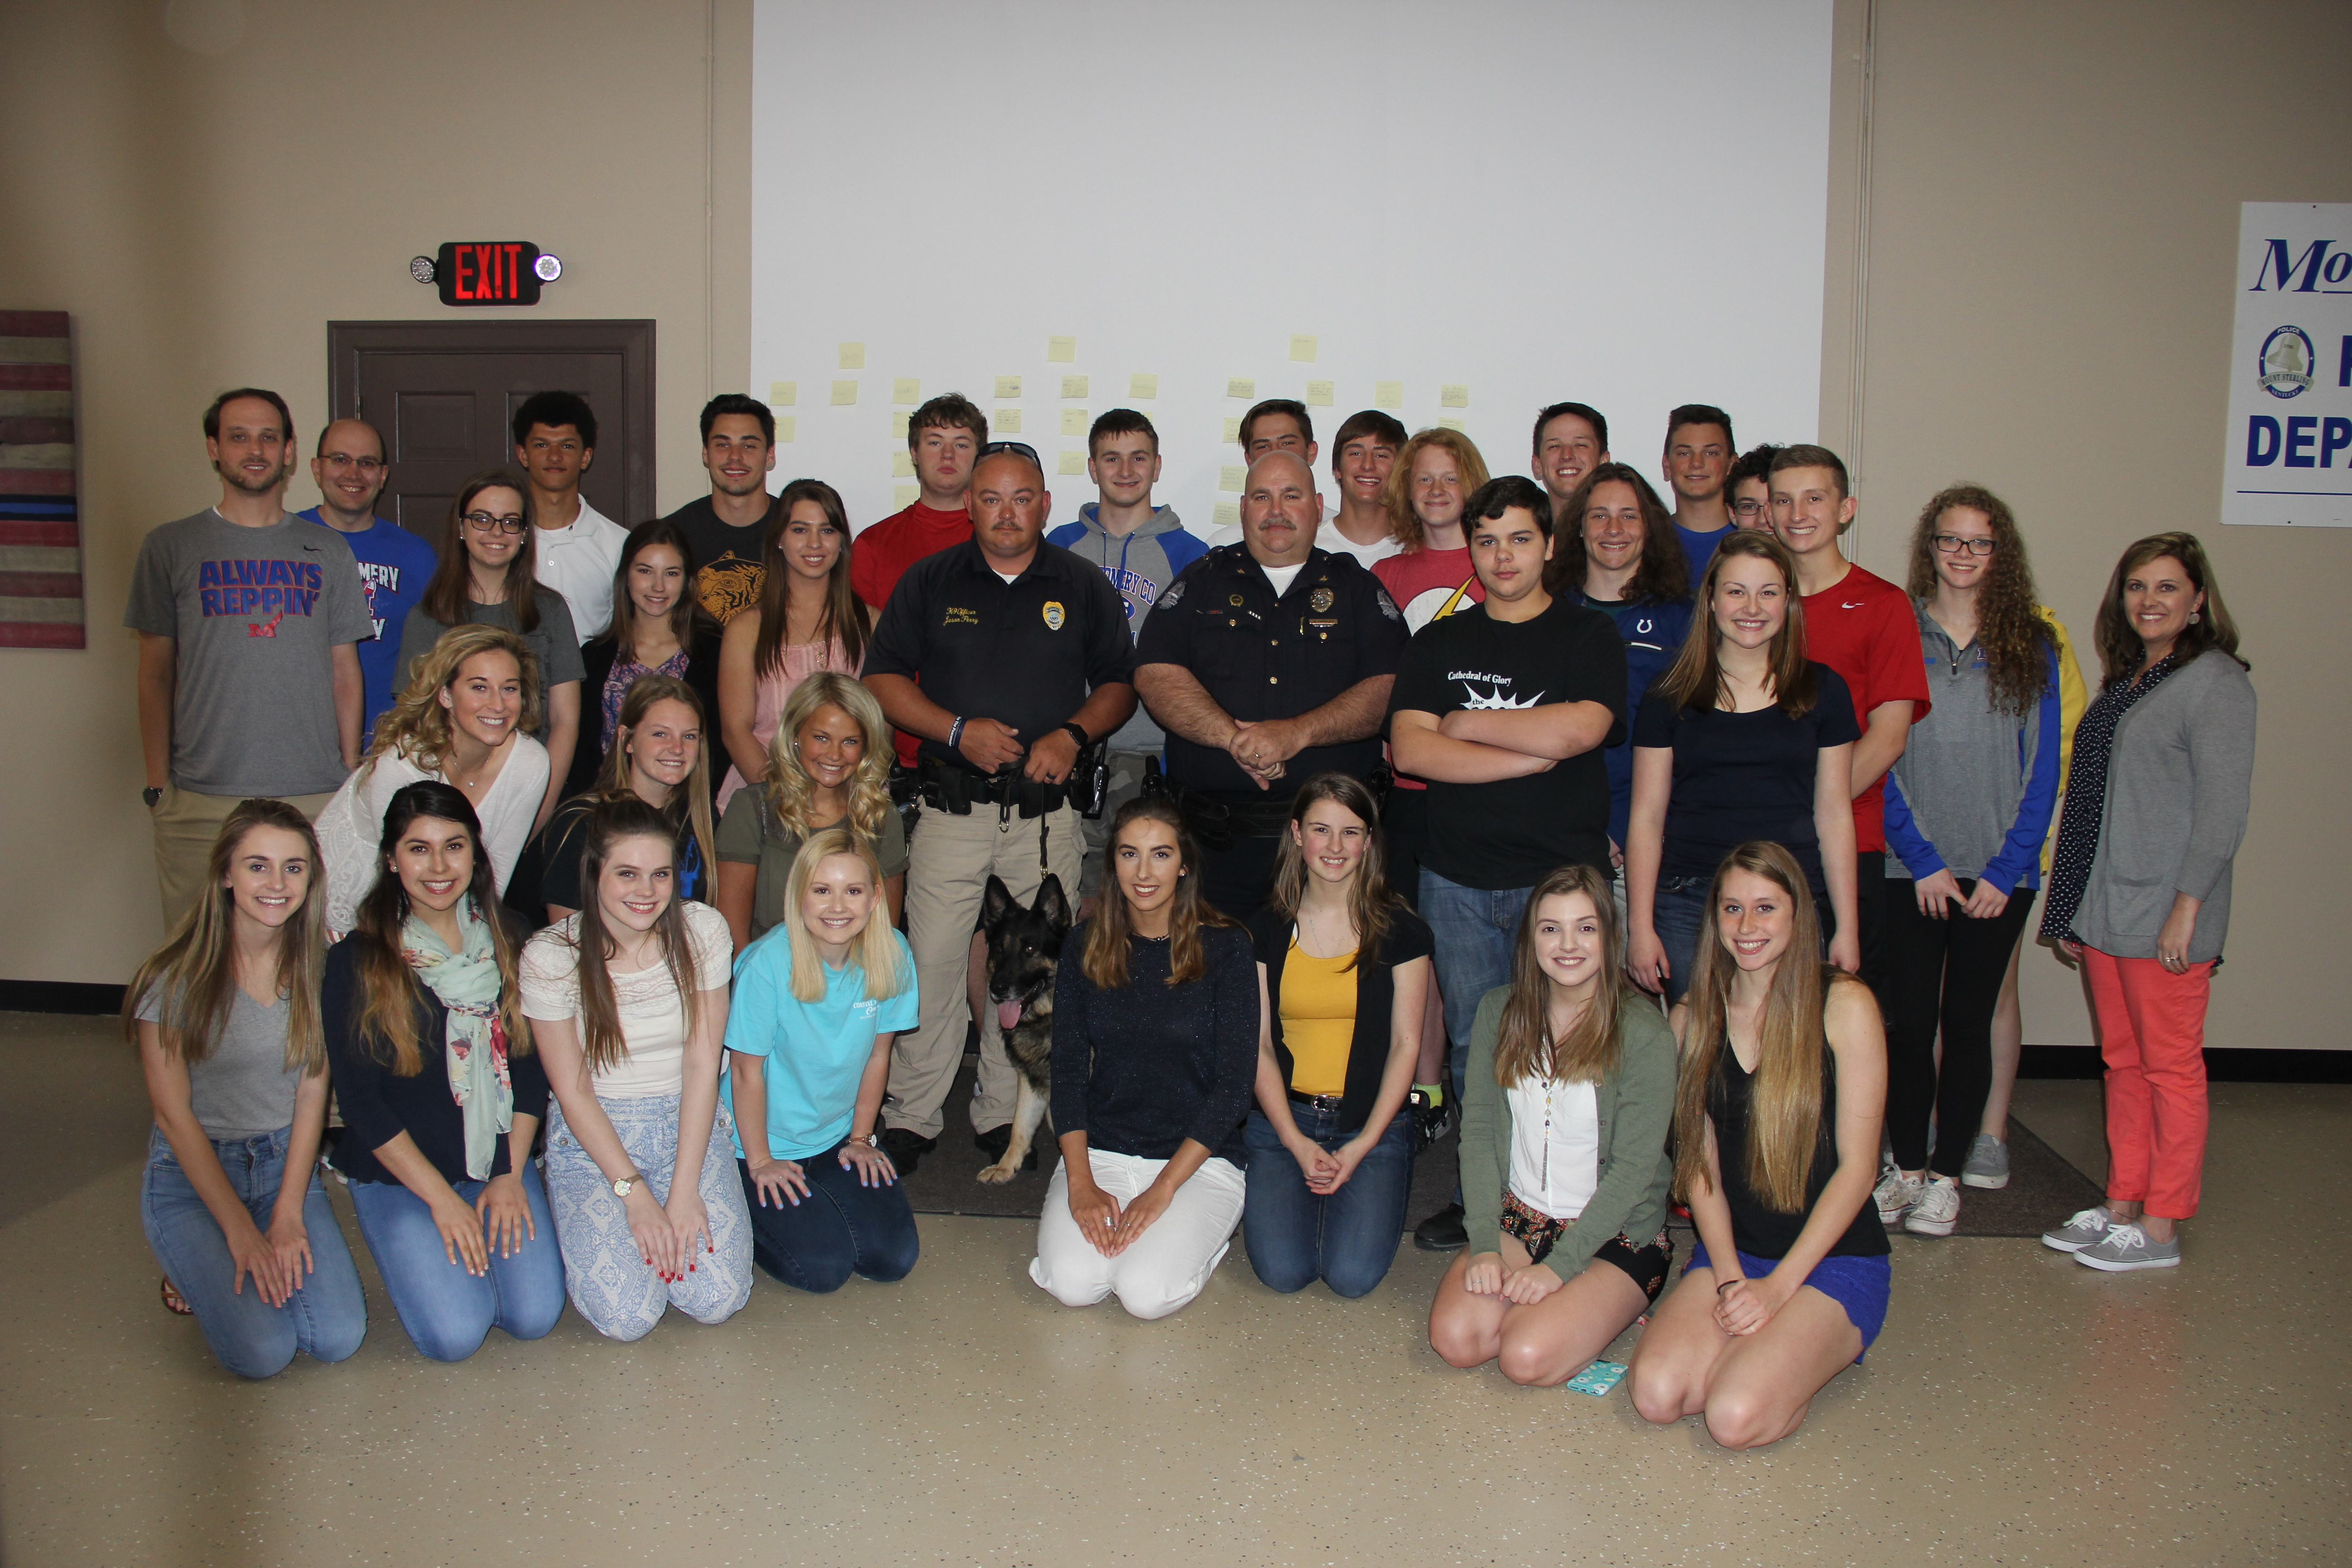 MCHS Youth ADAPT group with Chief Charles and K9 Officer Jason Perry.